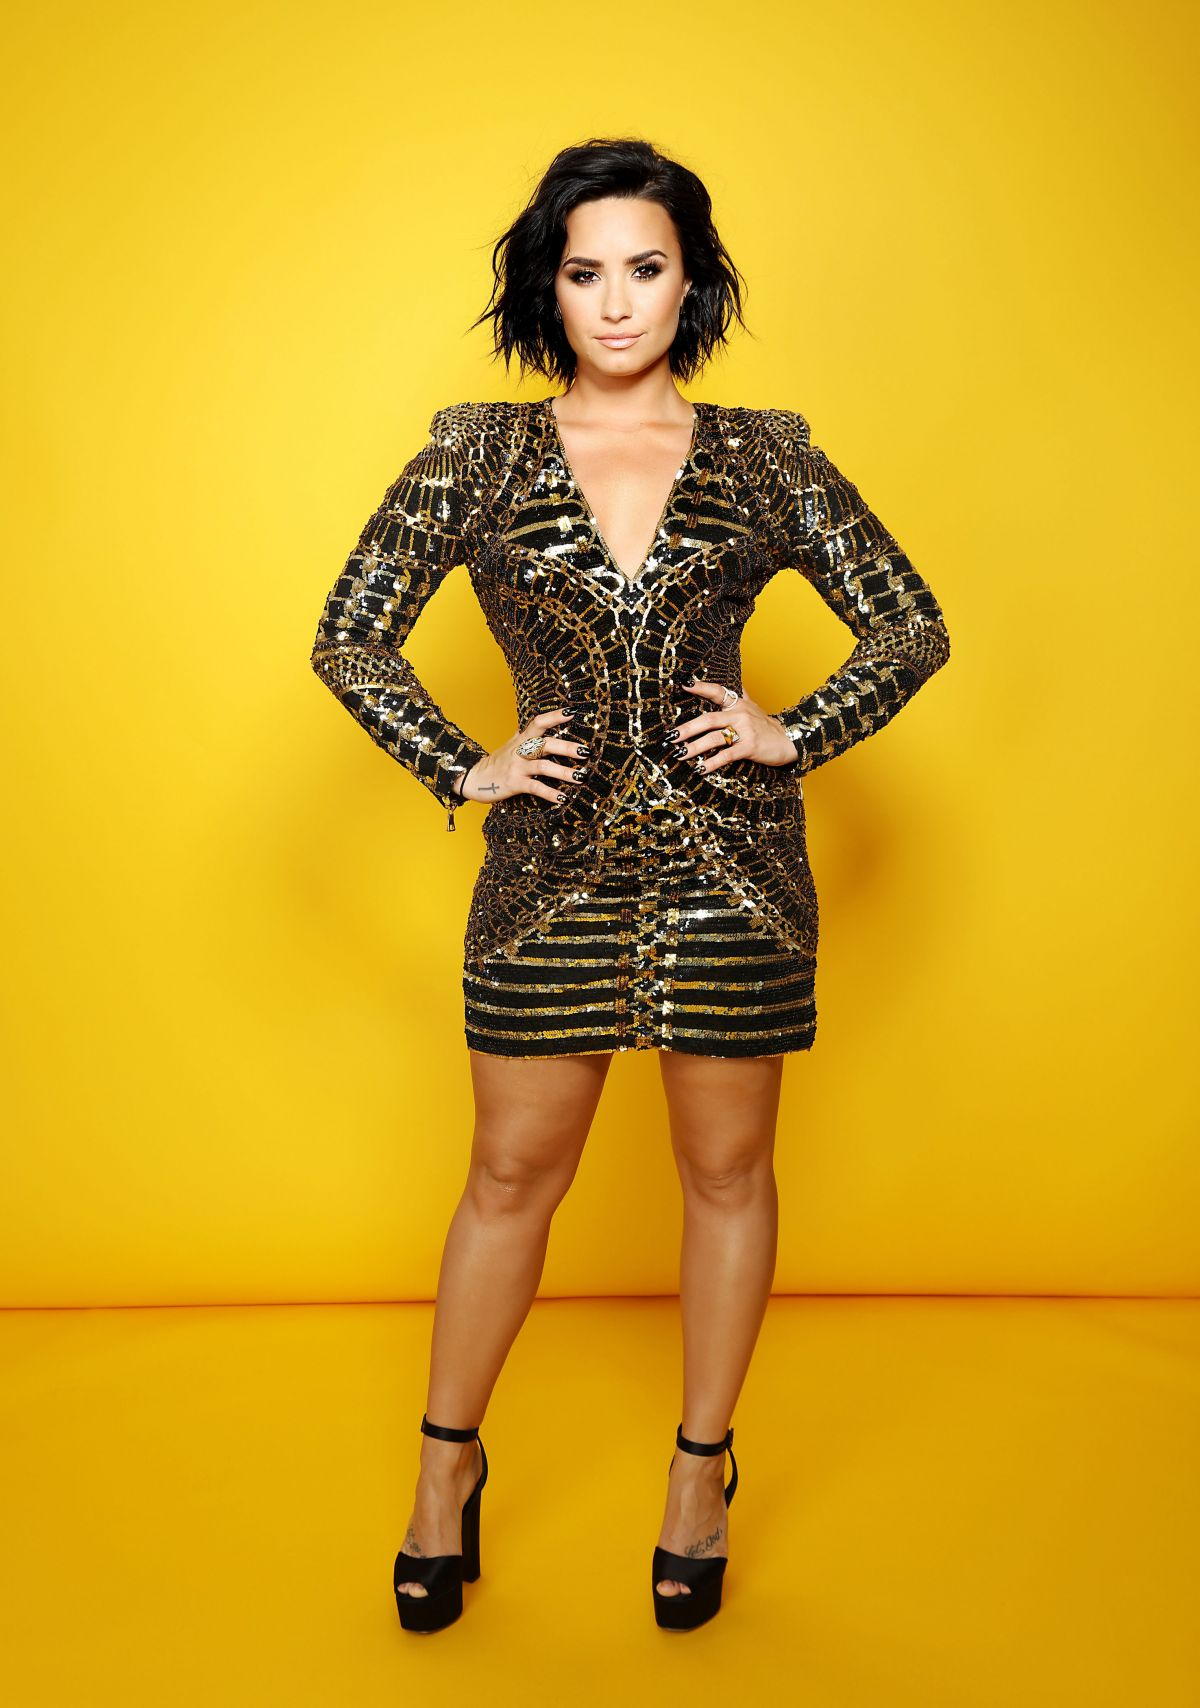 demi lovato - photo #47